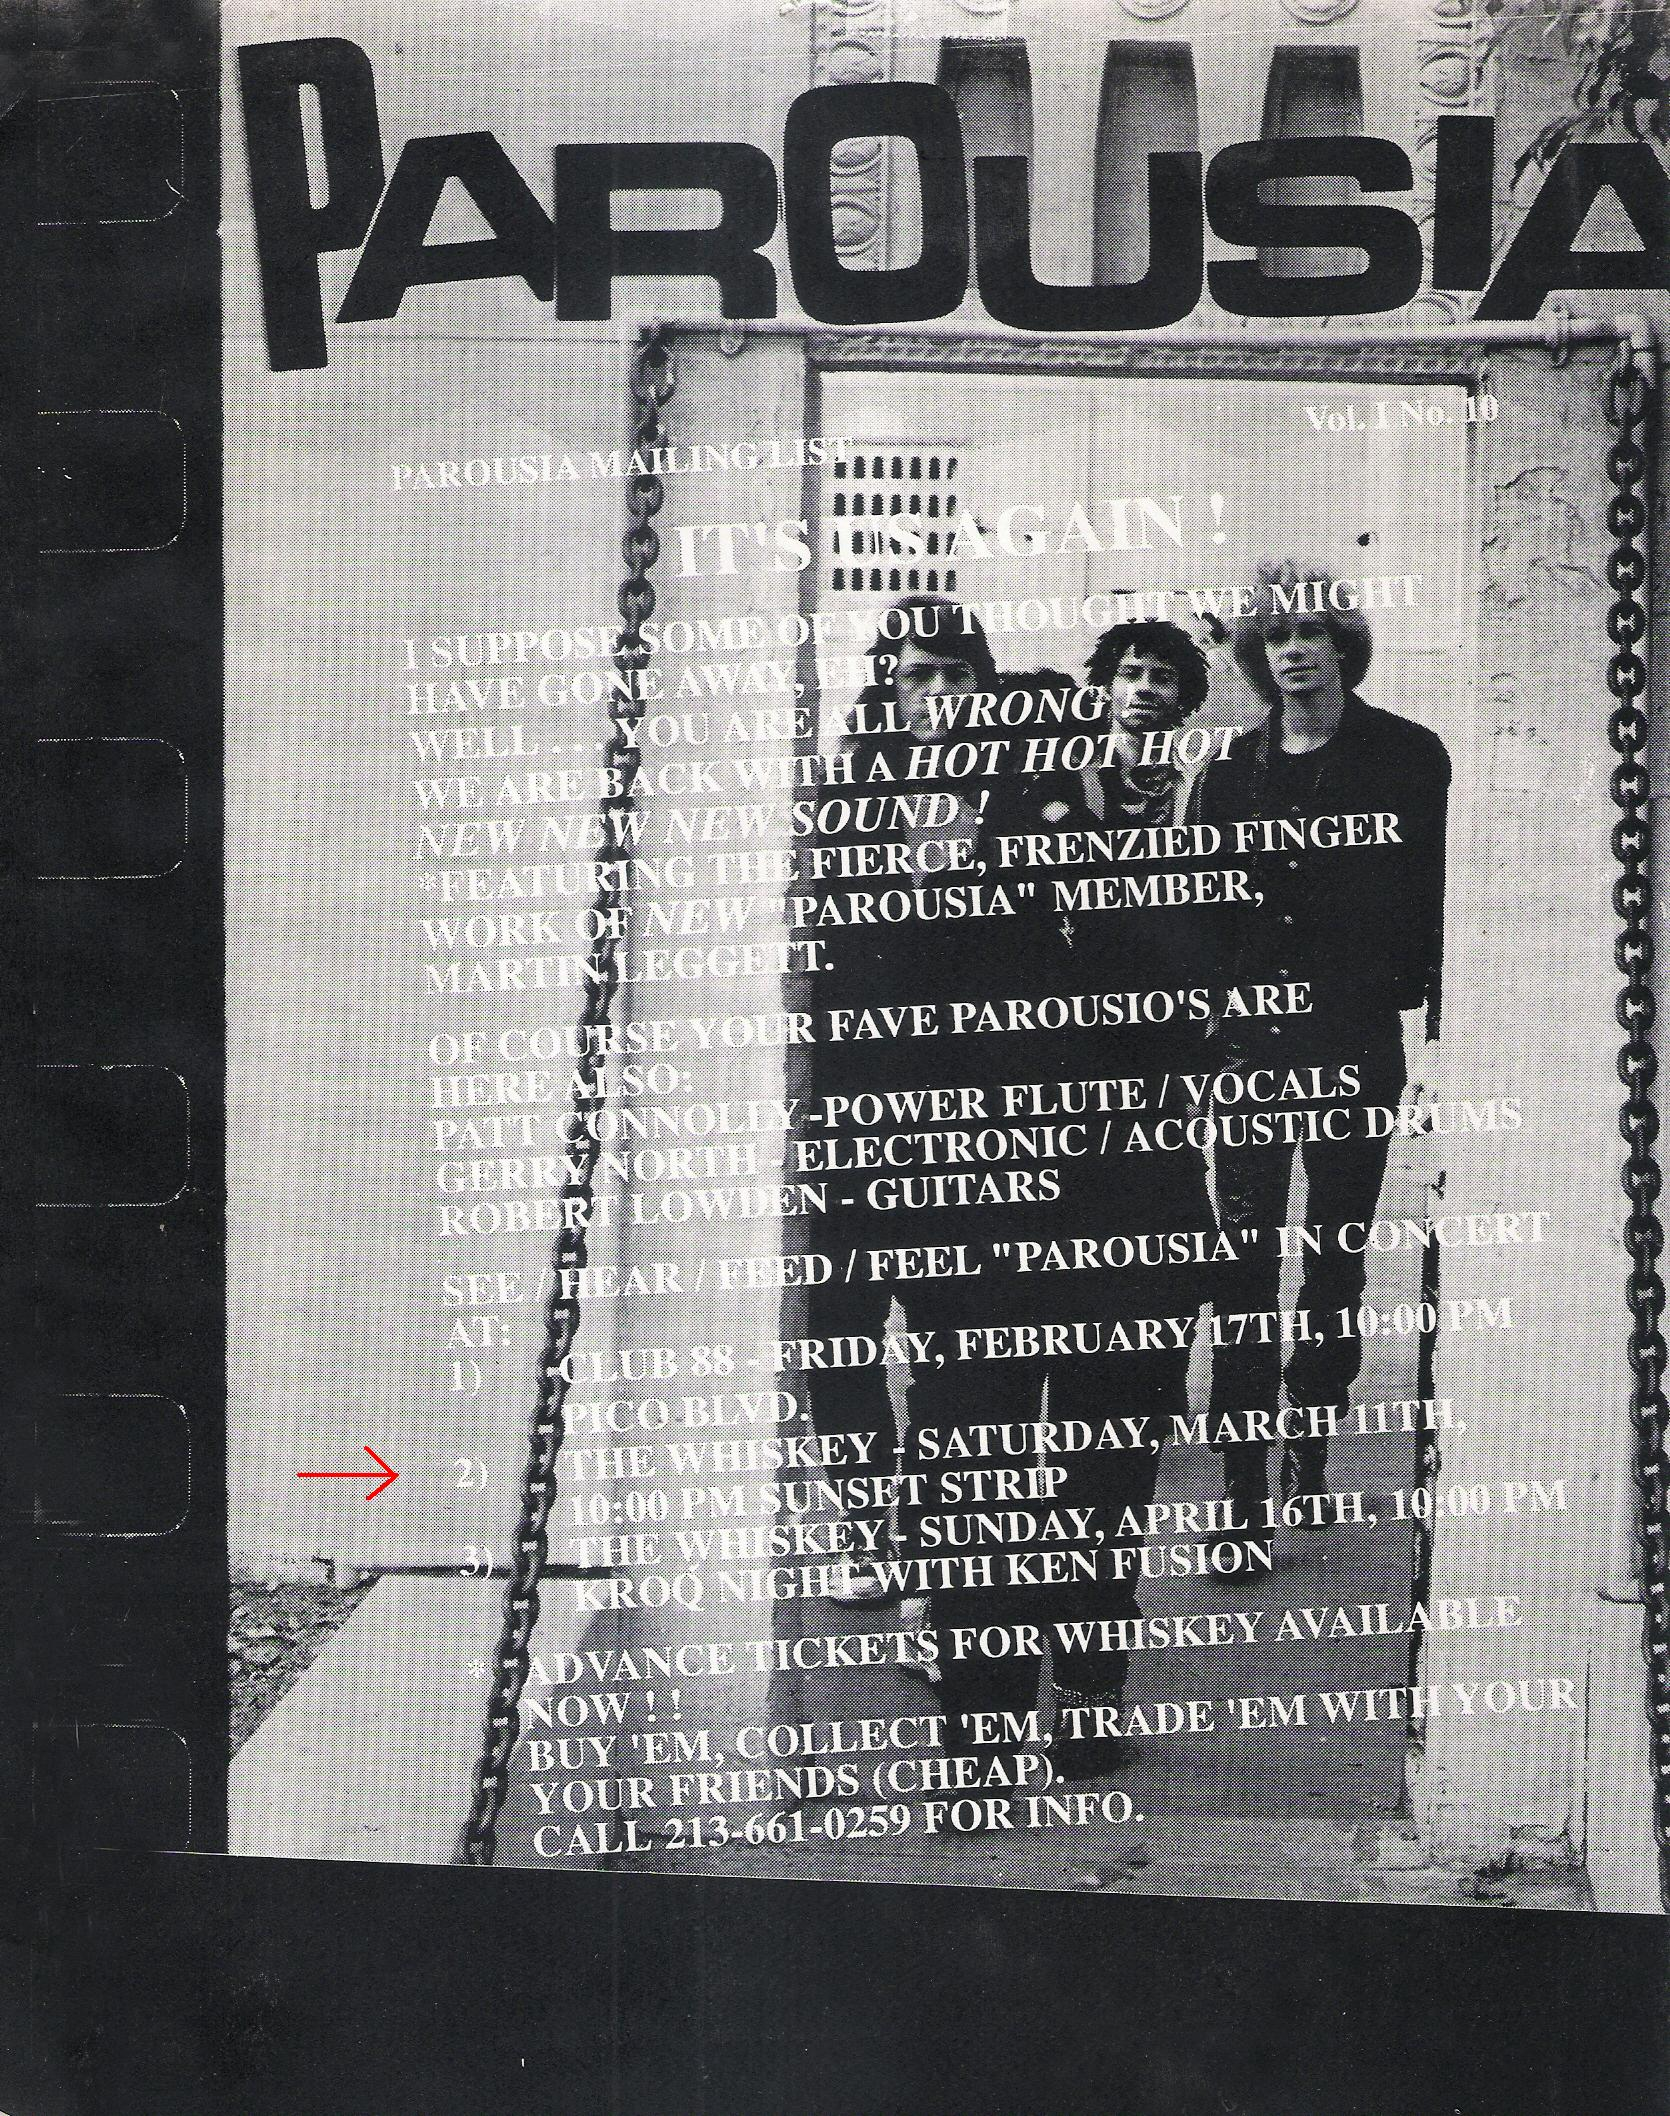 PAROUSIA at the Whisky a-go-go Saturday, March 11, 1989